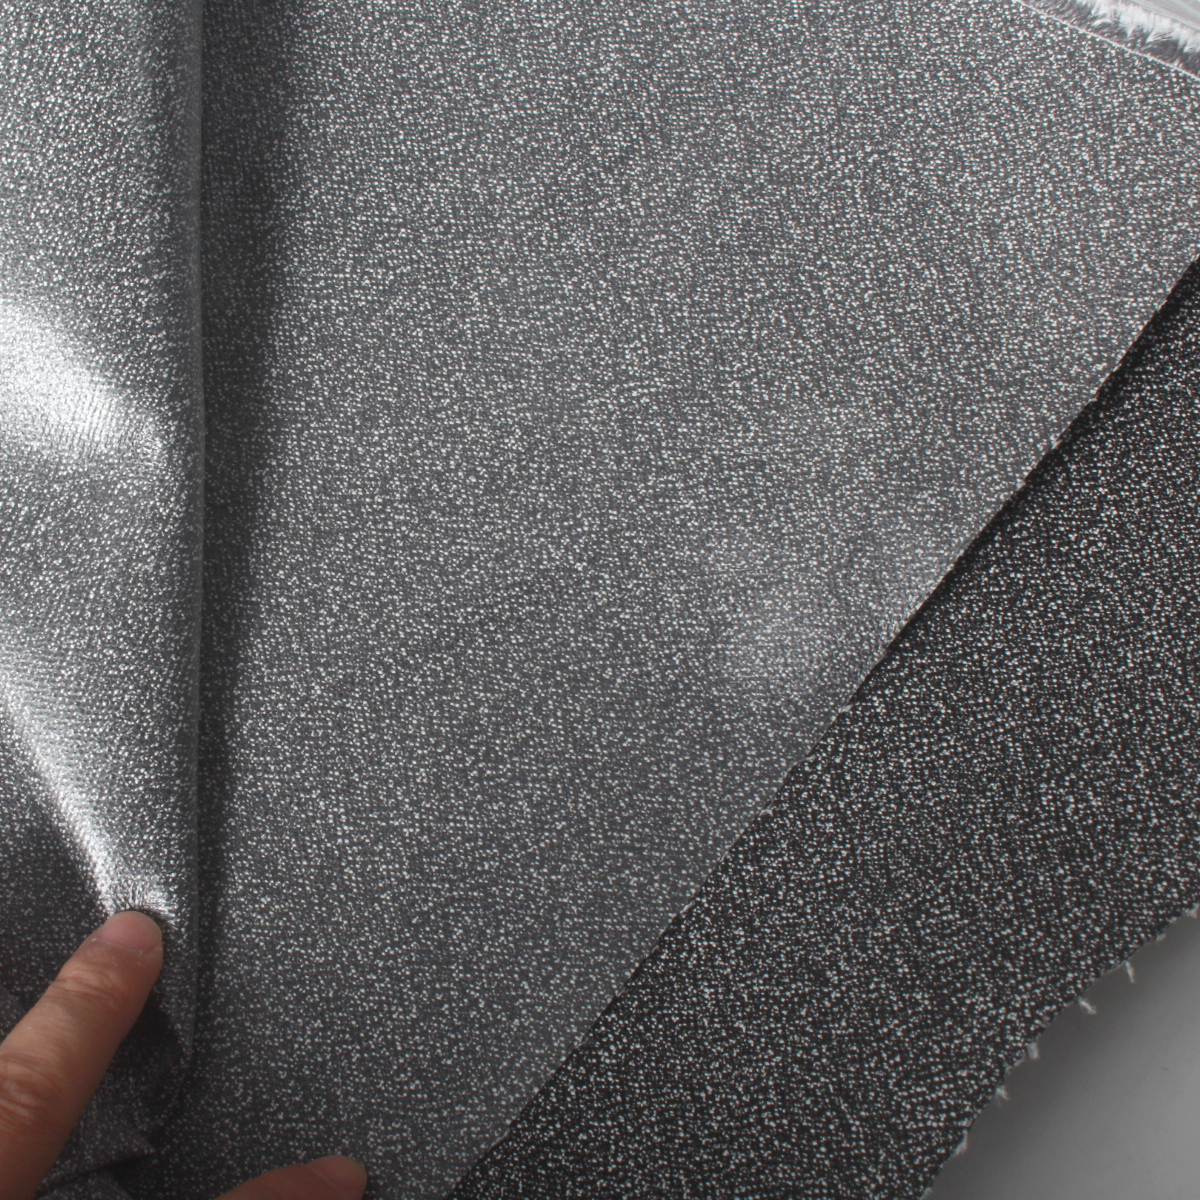 Jeely 300gsm Cut Resistant and Waterproof UHMWPE Woven Fabric With TPU Coating